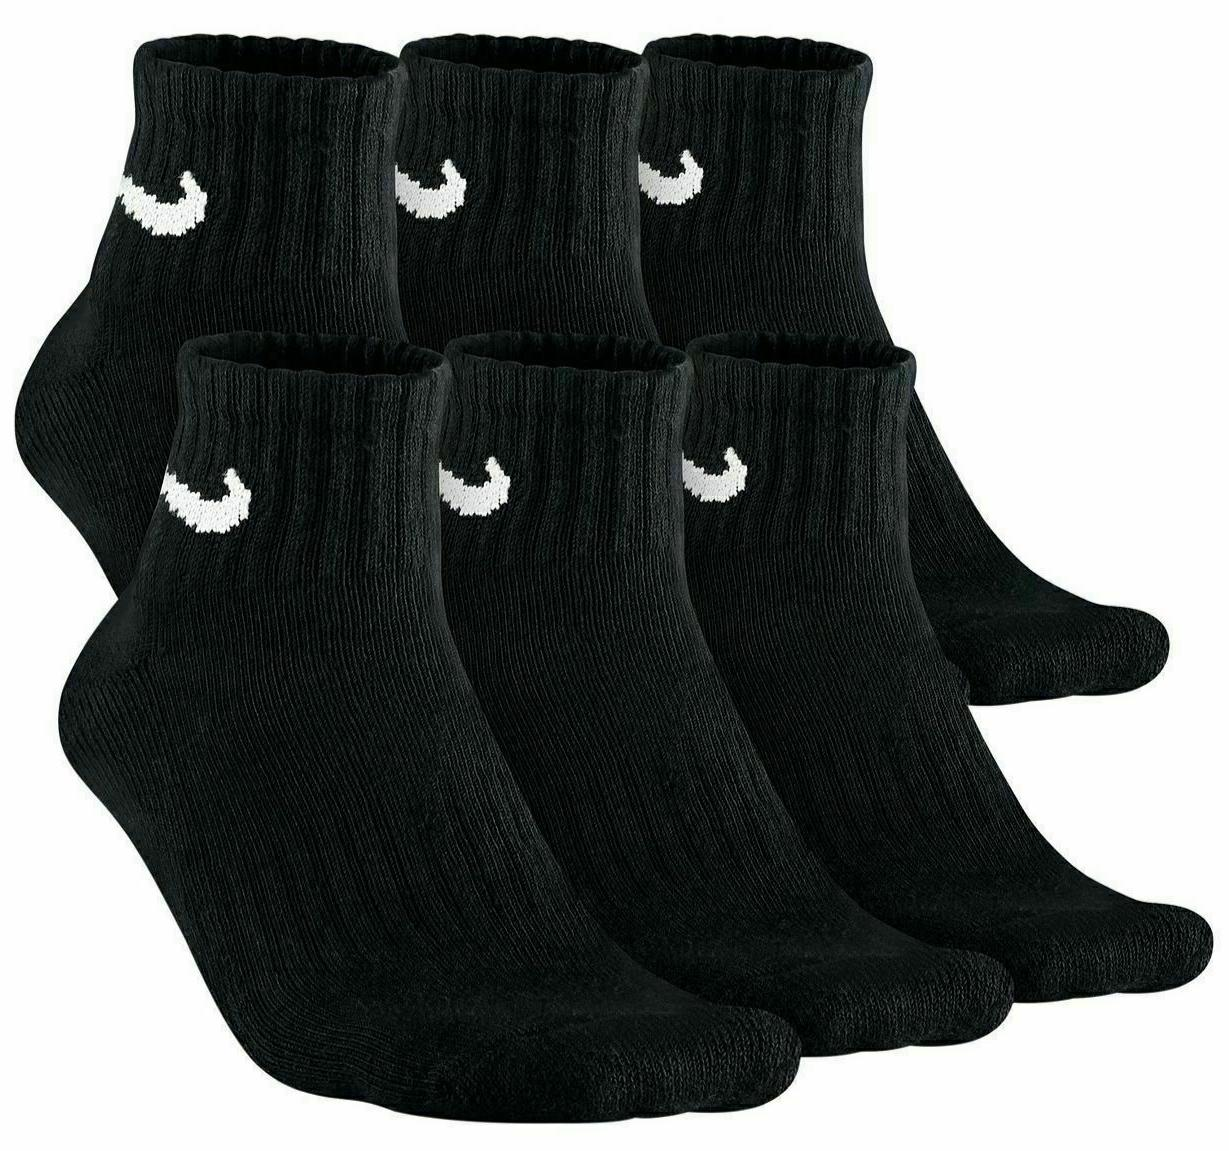 NIKE Mens 3-6-PAIRS PACK BLACK CUSHION COTTON ANKLE SOCKS Shoe